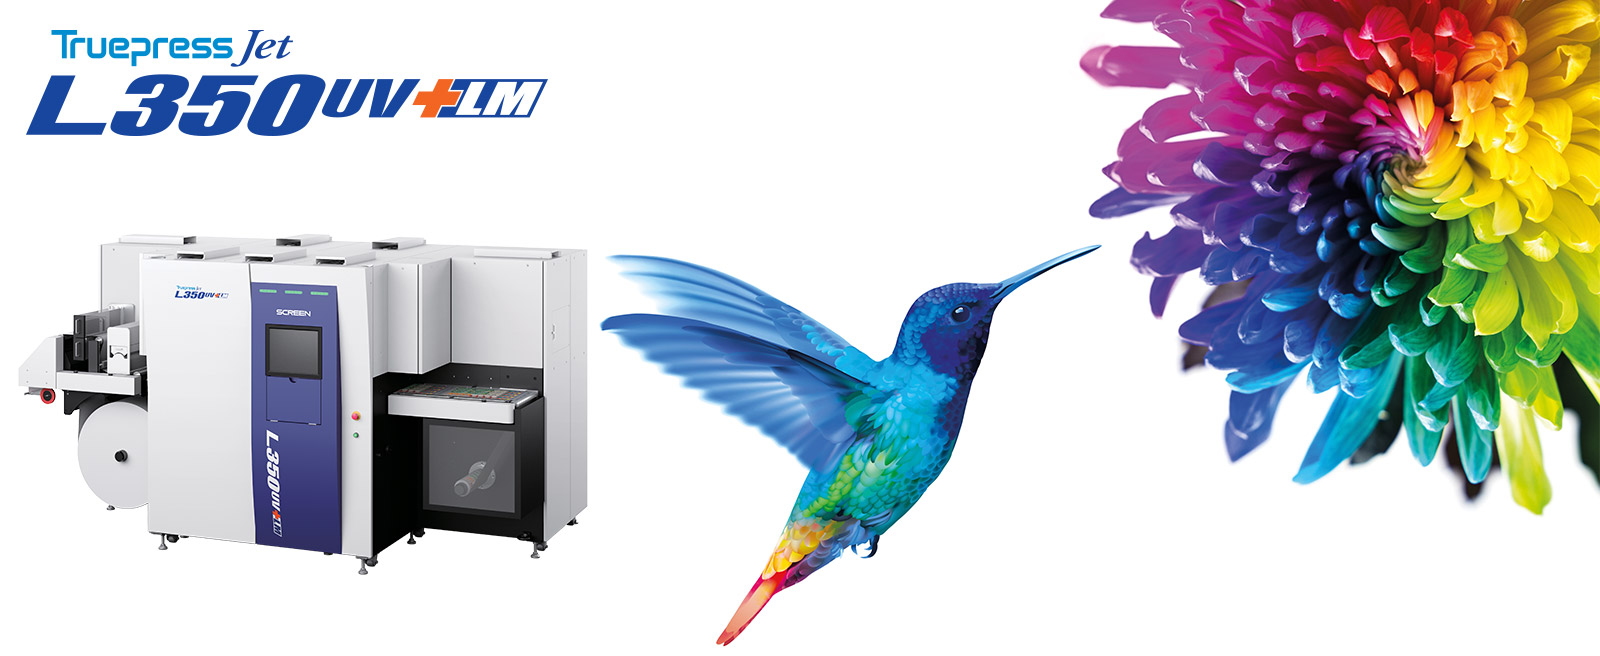 Truepress Jet L350UV+ Series